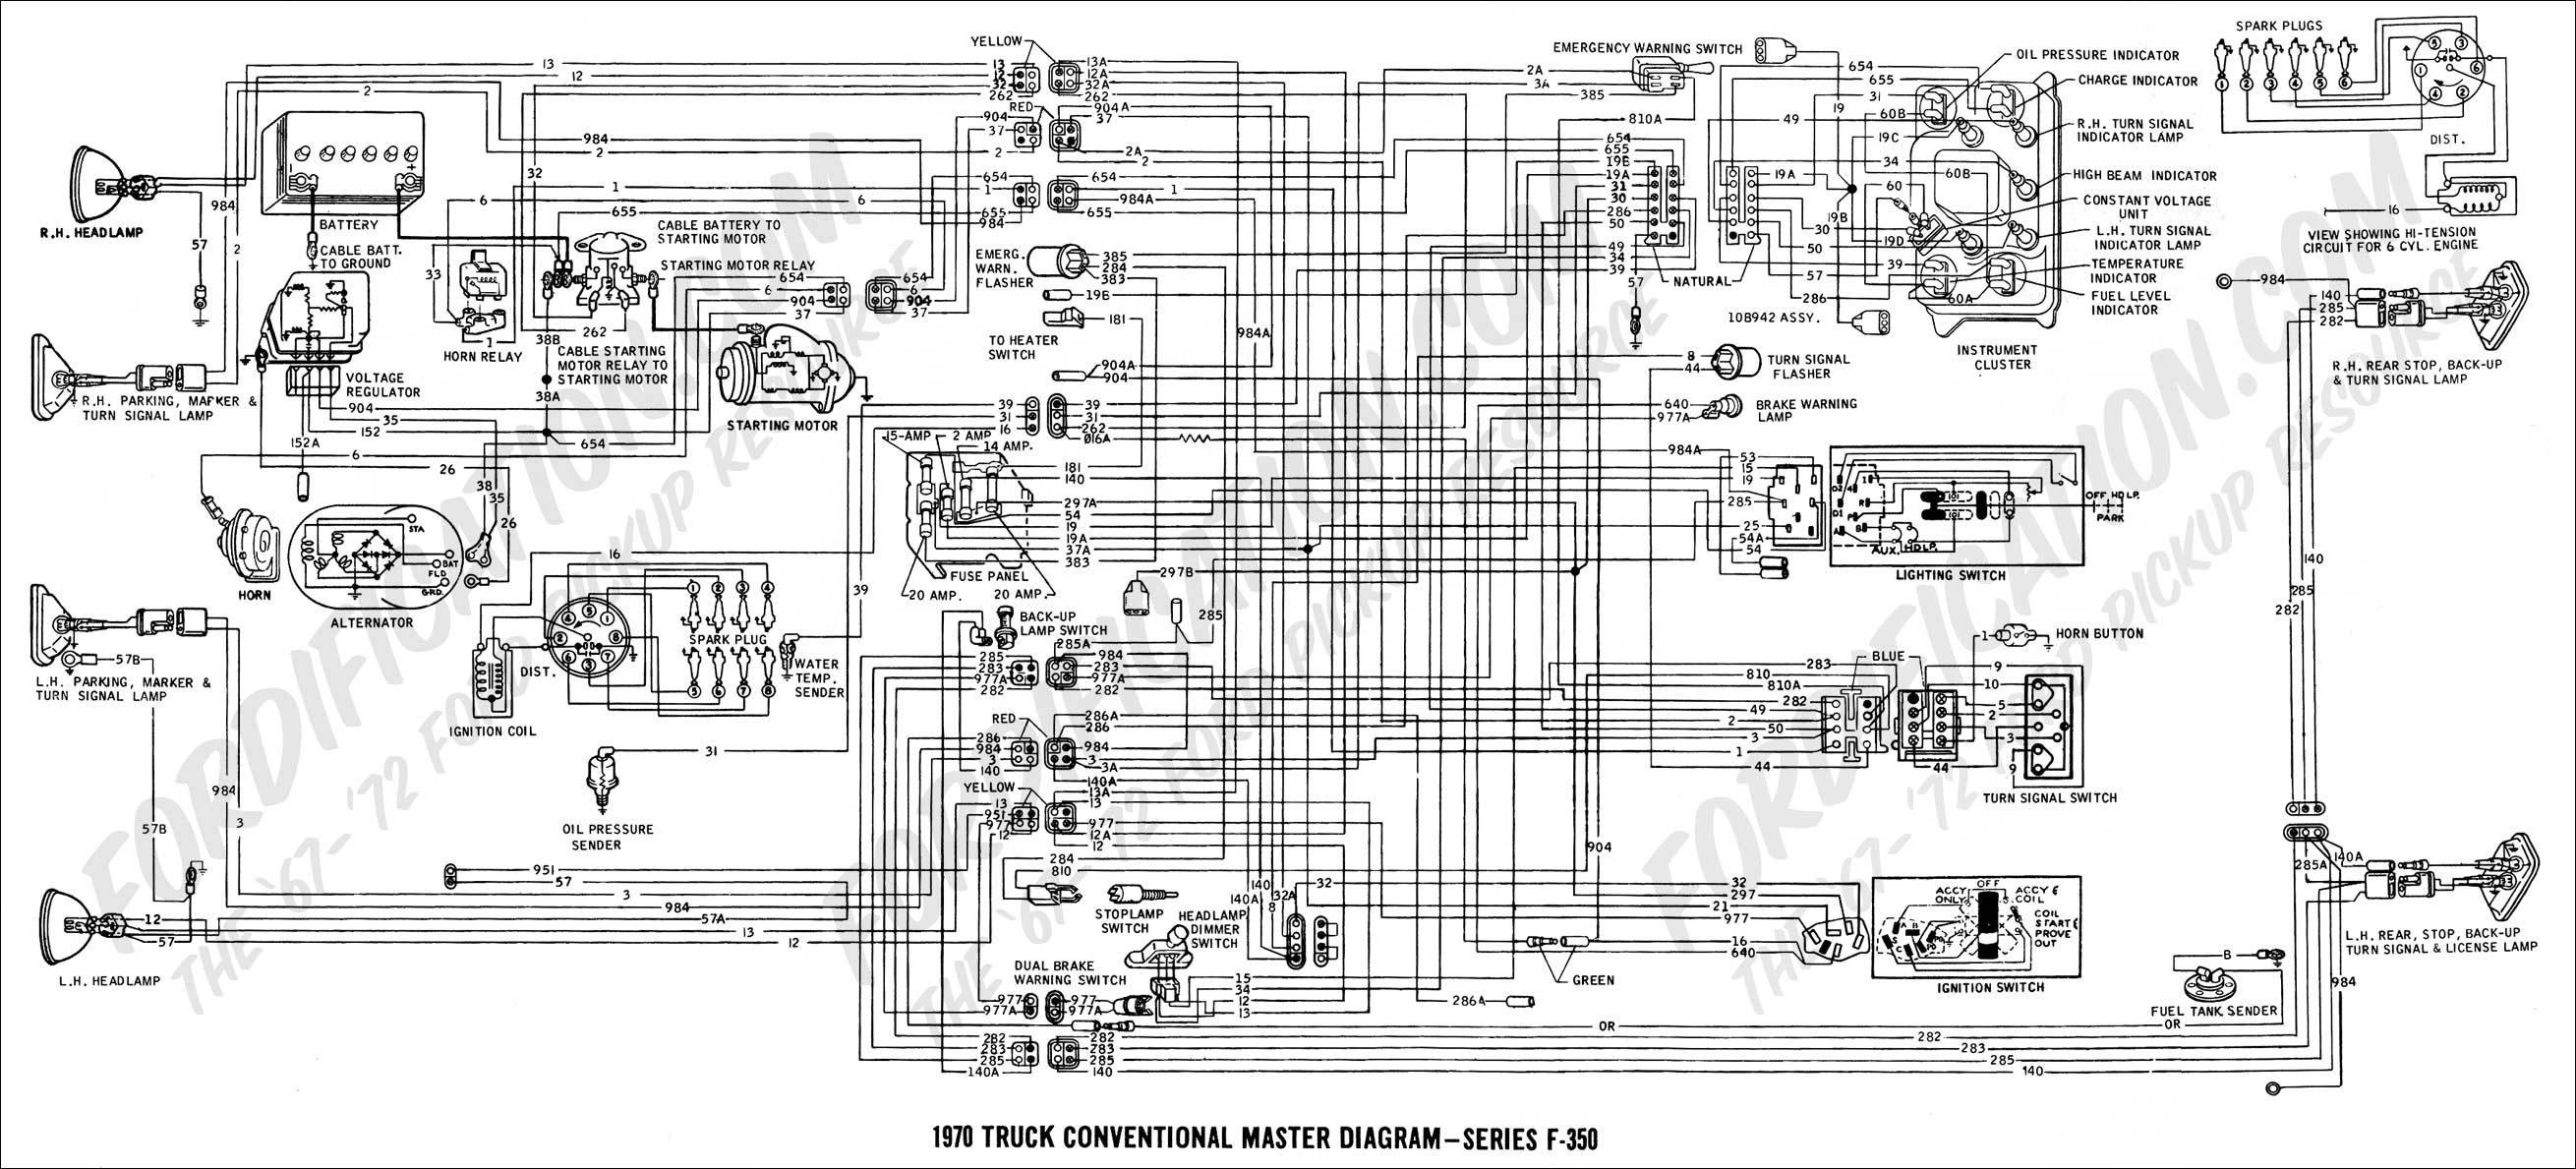 2005 town and Country Starer Wireing Diagram Yto Wiring Diagram Of 2005 town and Country Starer Wireing Diagram